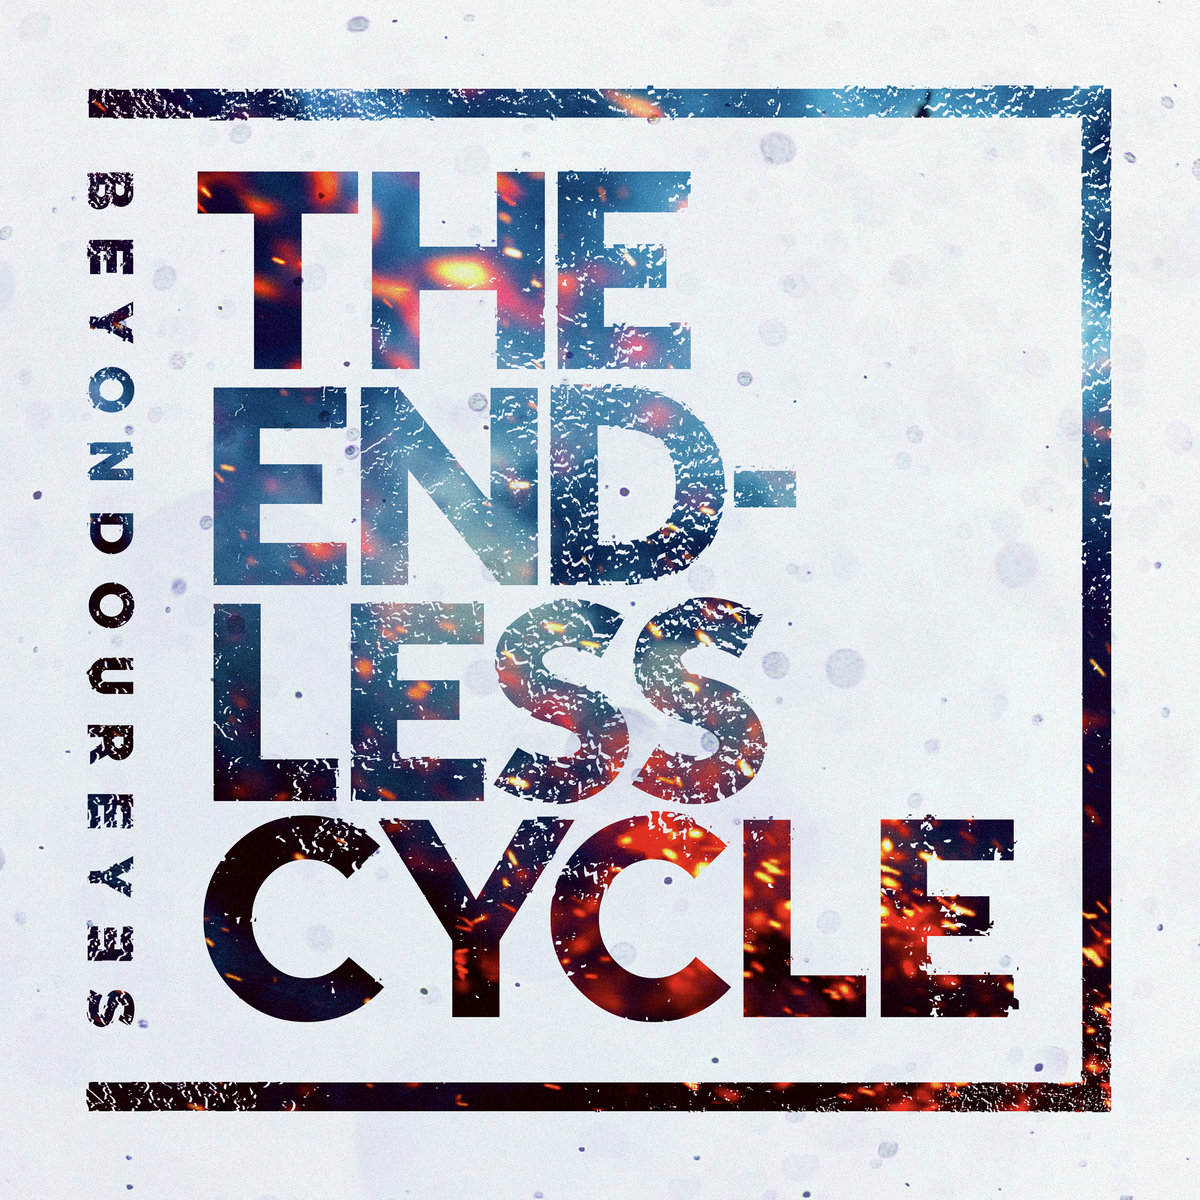 Beyond Our Eyes - The Endless Cycle [single] (2018)